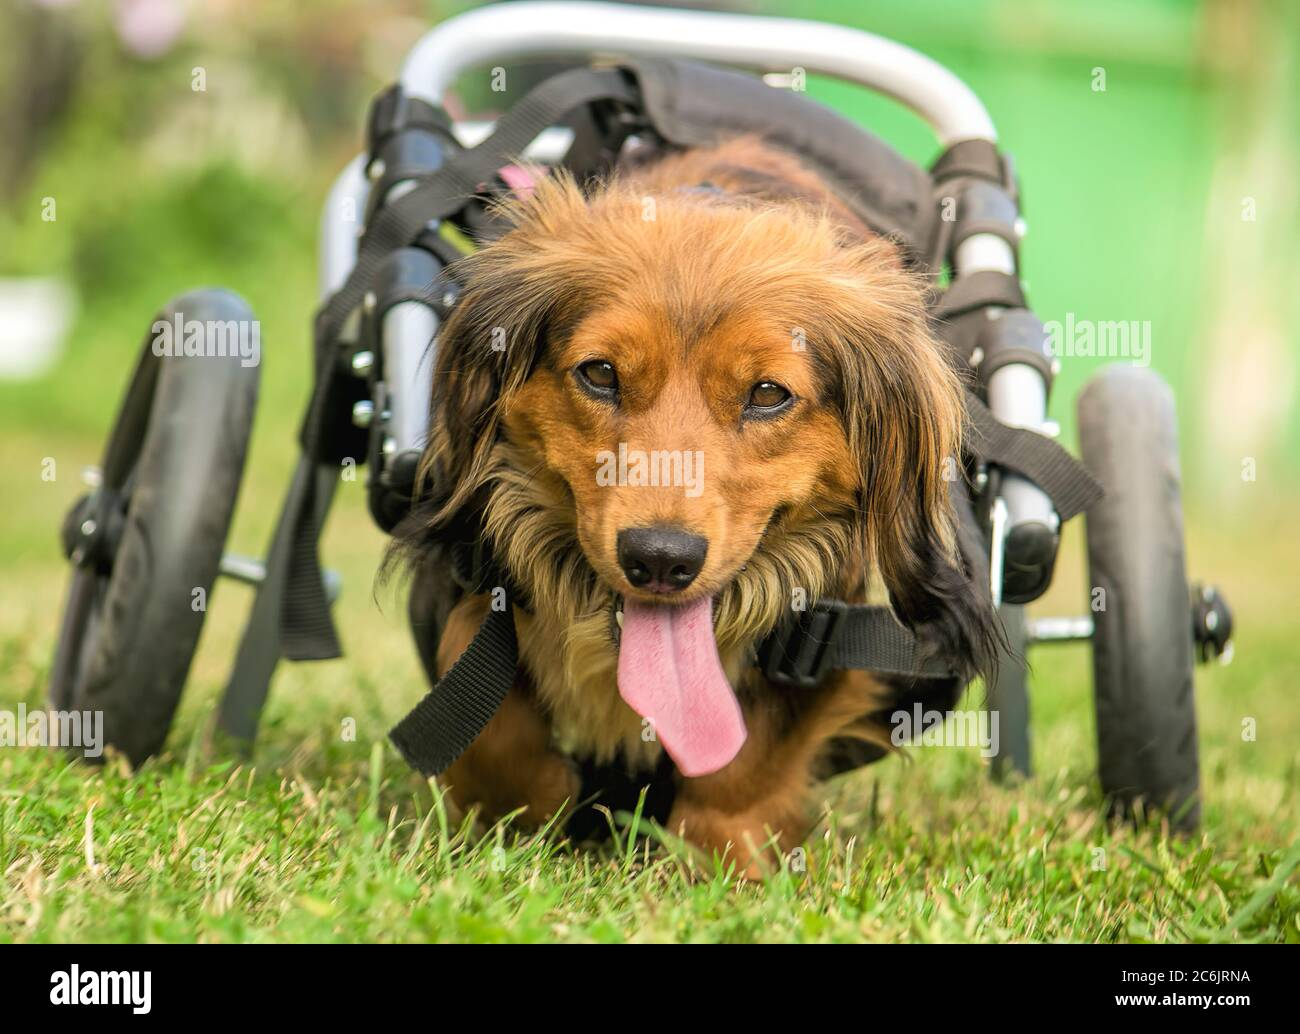 Cute long-haired dachshund in a doggy wheelchair Stock Photo - Alamy